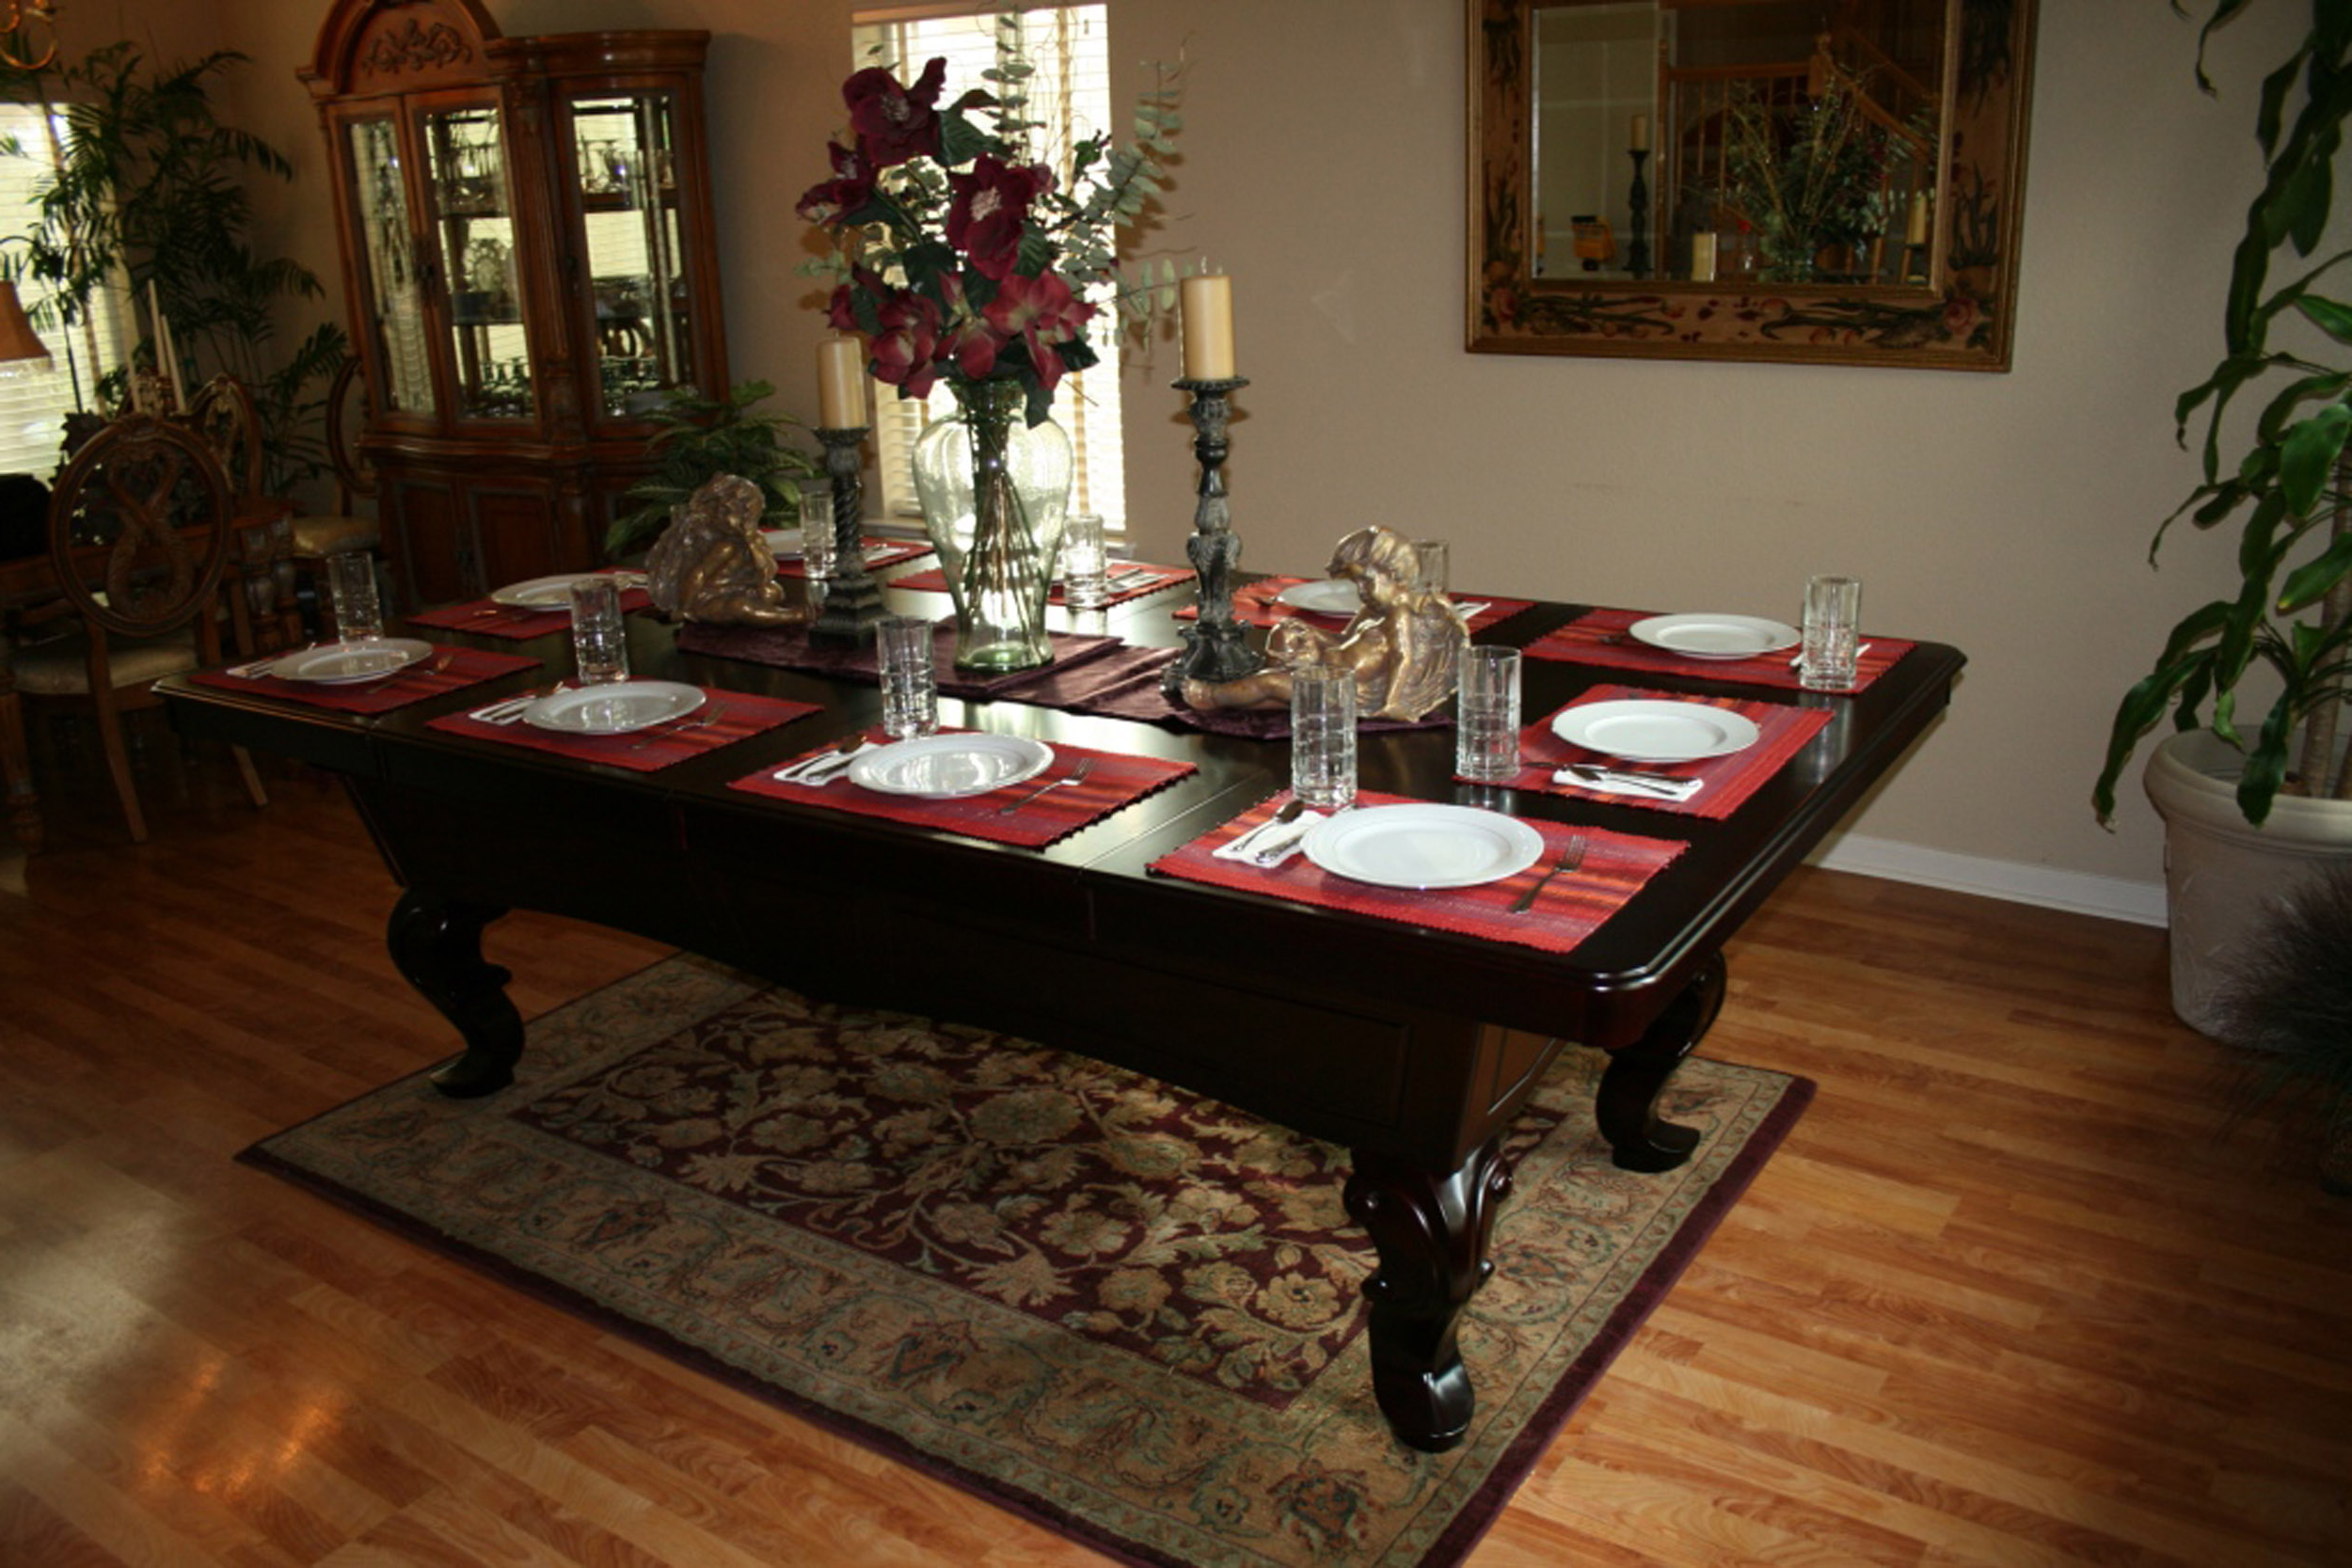 Amazing Pool Table Dining Top Pool Tables Dining Room Table (Image 21 of 28)